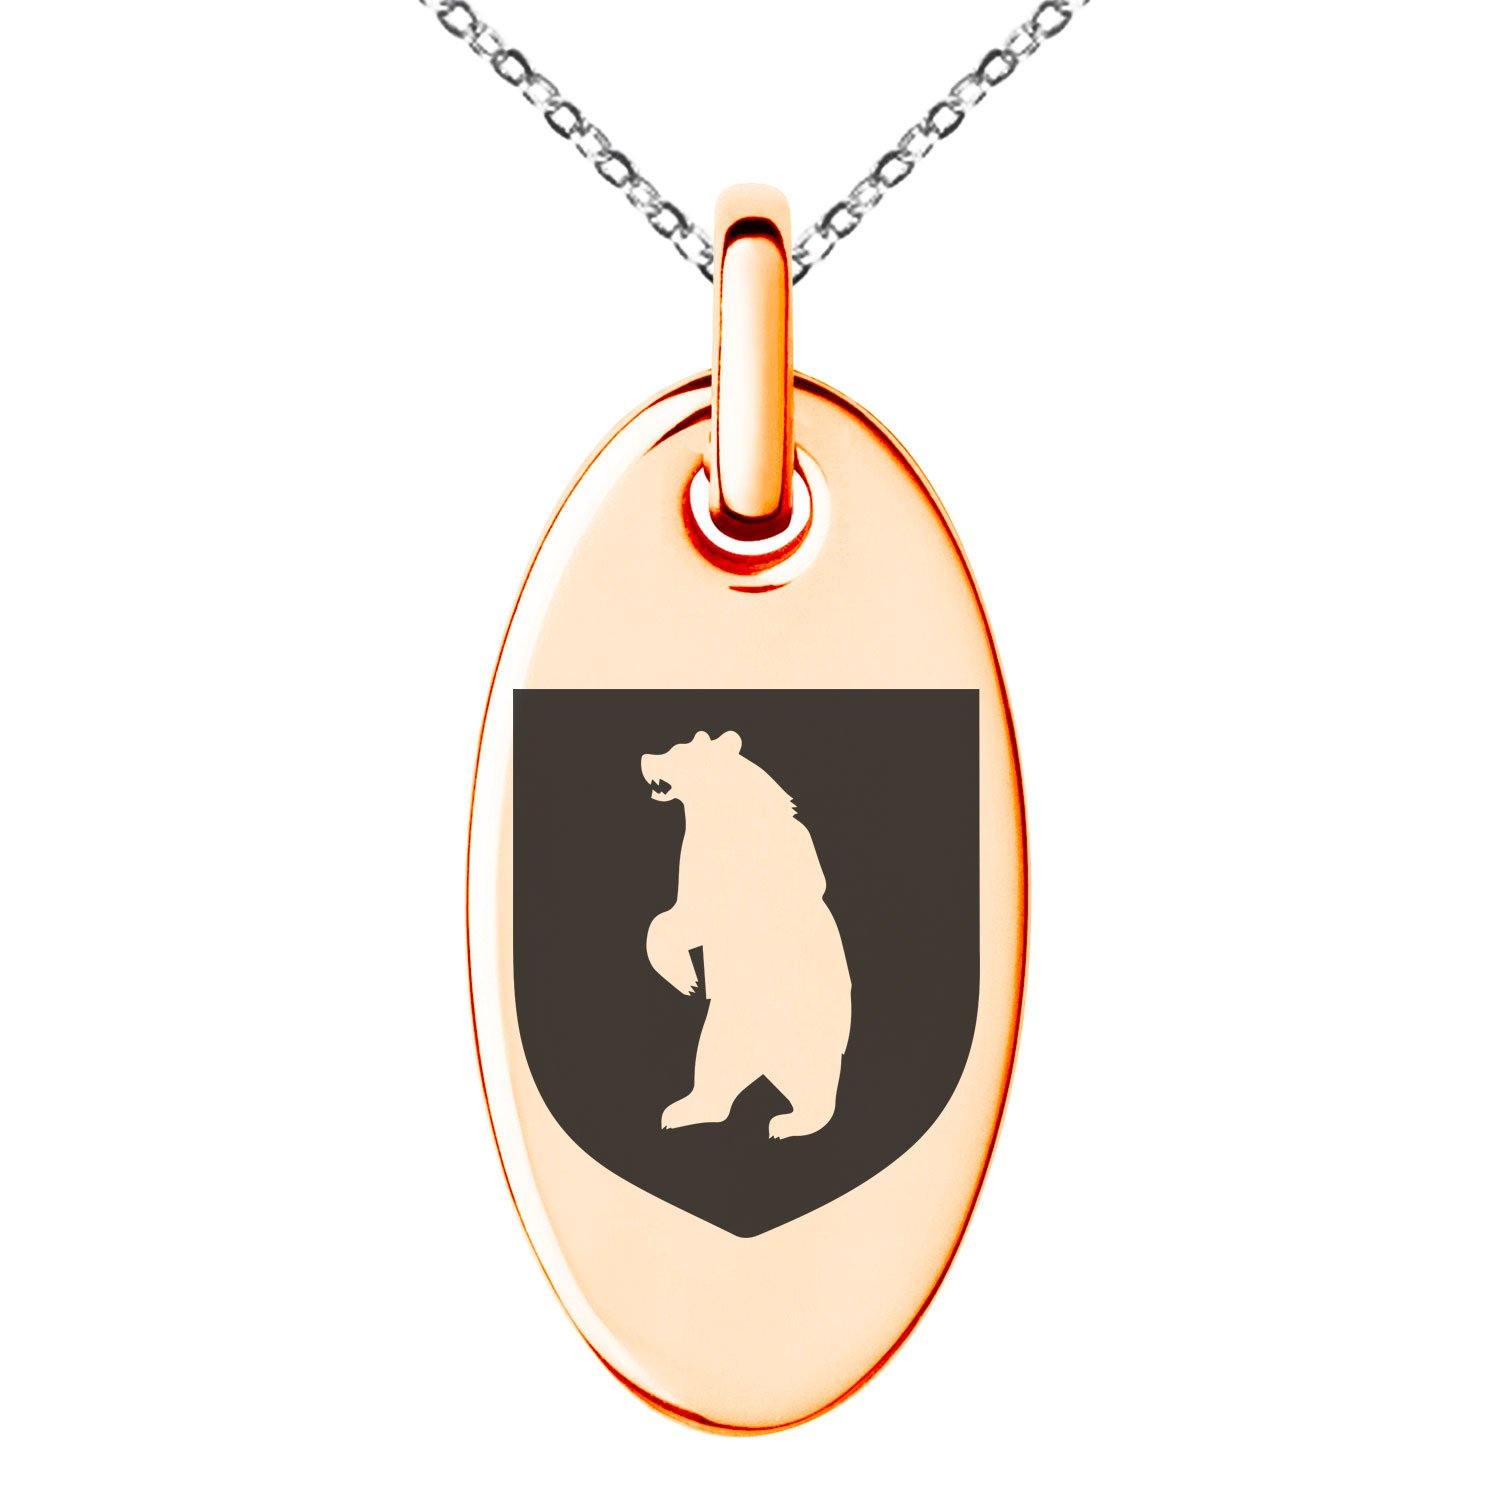 Tioneer Rose Gold Plated Stainless Steel Bear Ferocity Coat of Arms Shield Symbol Engraved Small Oval Charm Pendant Necklace